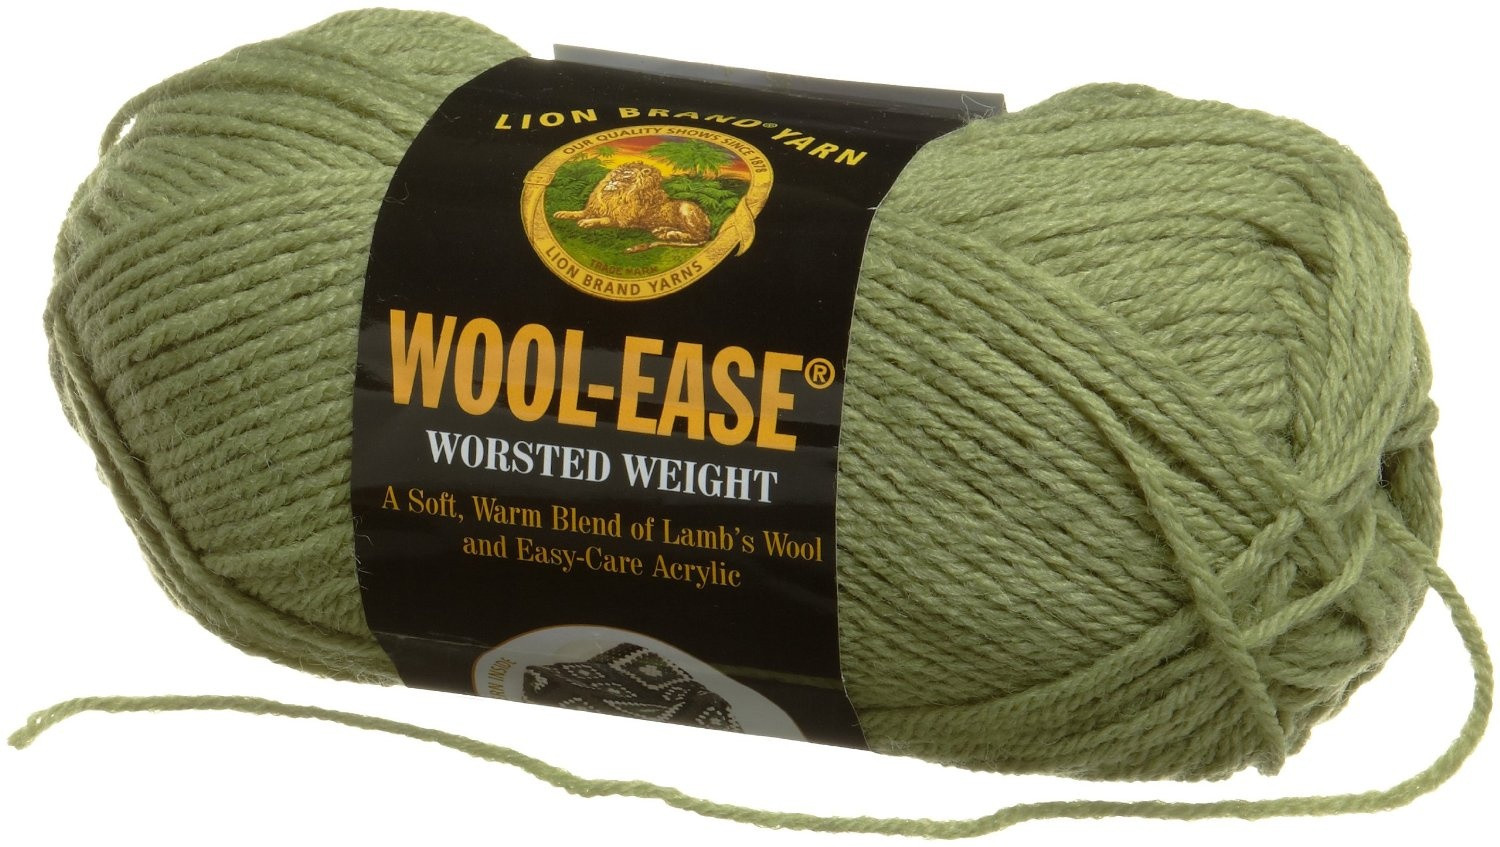 Lion Brand Wool Ease Fresh Lion Brand Yarn Wool Ease Yarn Best Price Of Lion Brand Wool Ease New Lion Brand Yarn Wool Ease Yarn Best Price